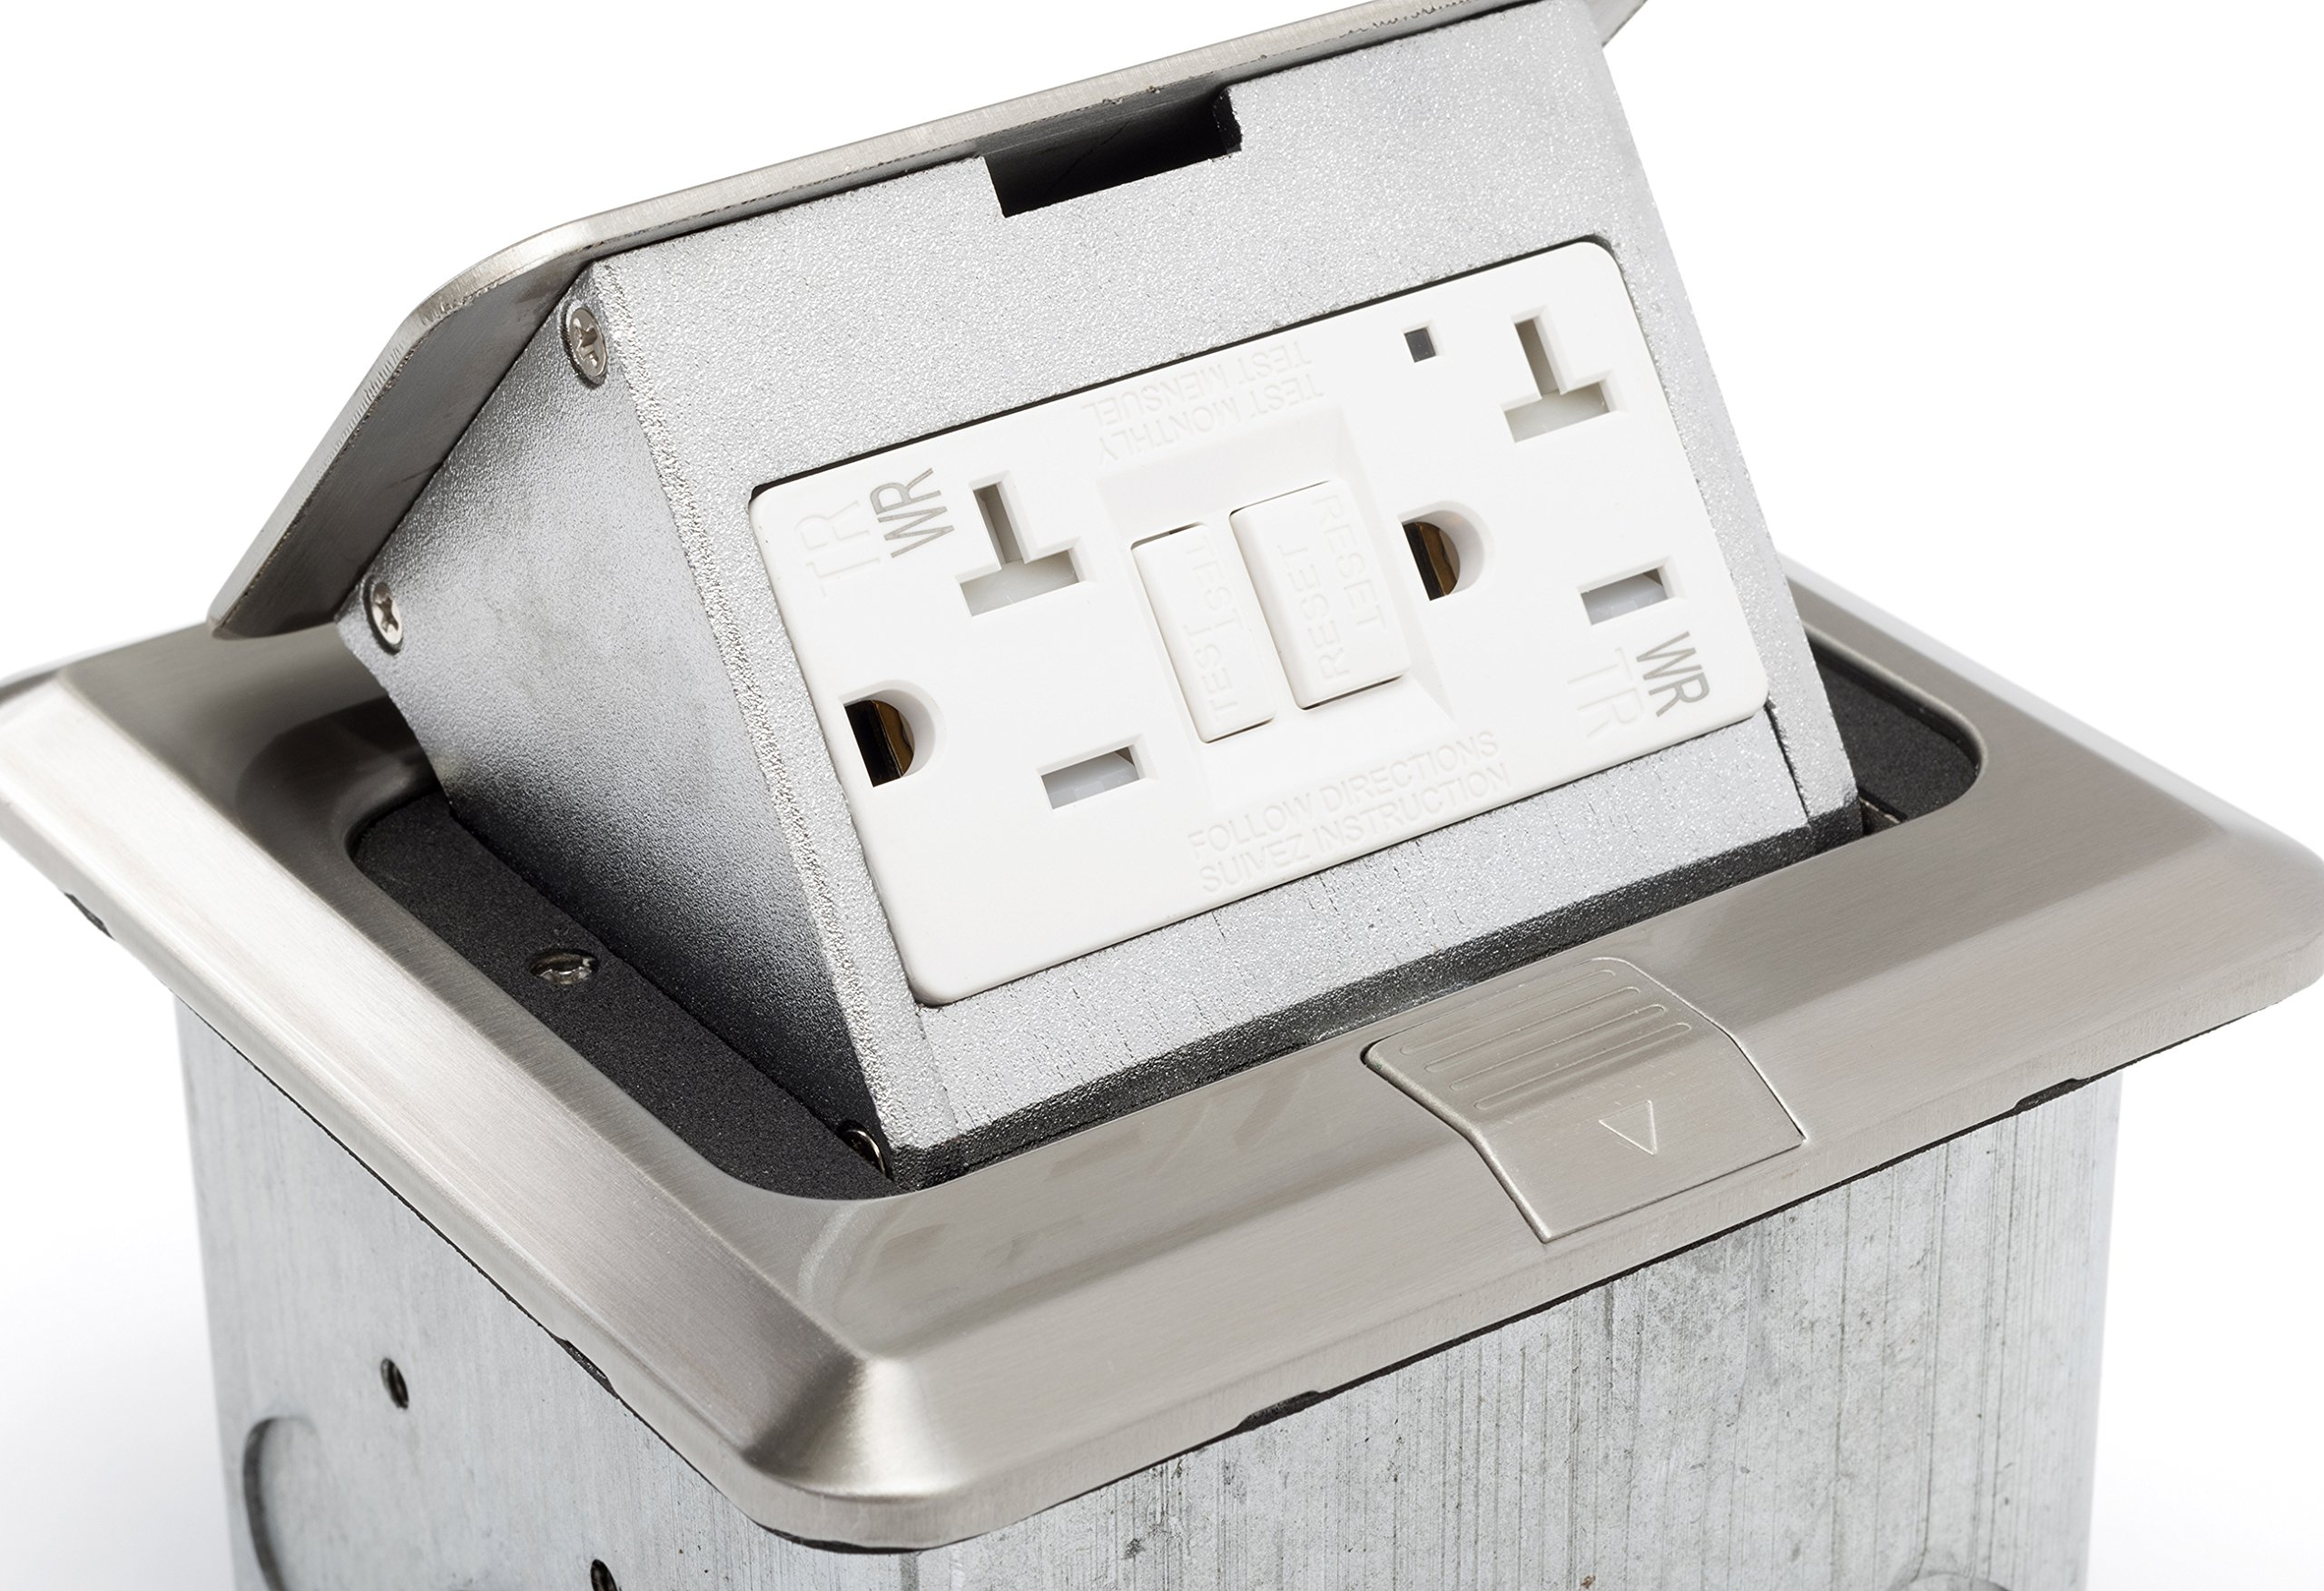 Lew Electric PUFP-SQ-SS-GFI Pop Up 20 AMP GFCI Outlet Box - Stainless Steel